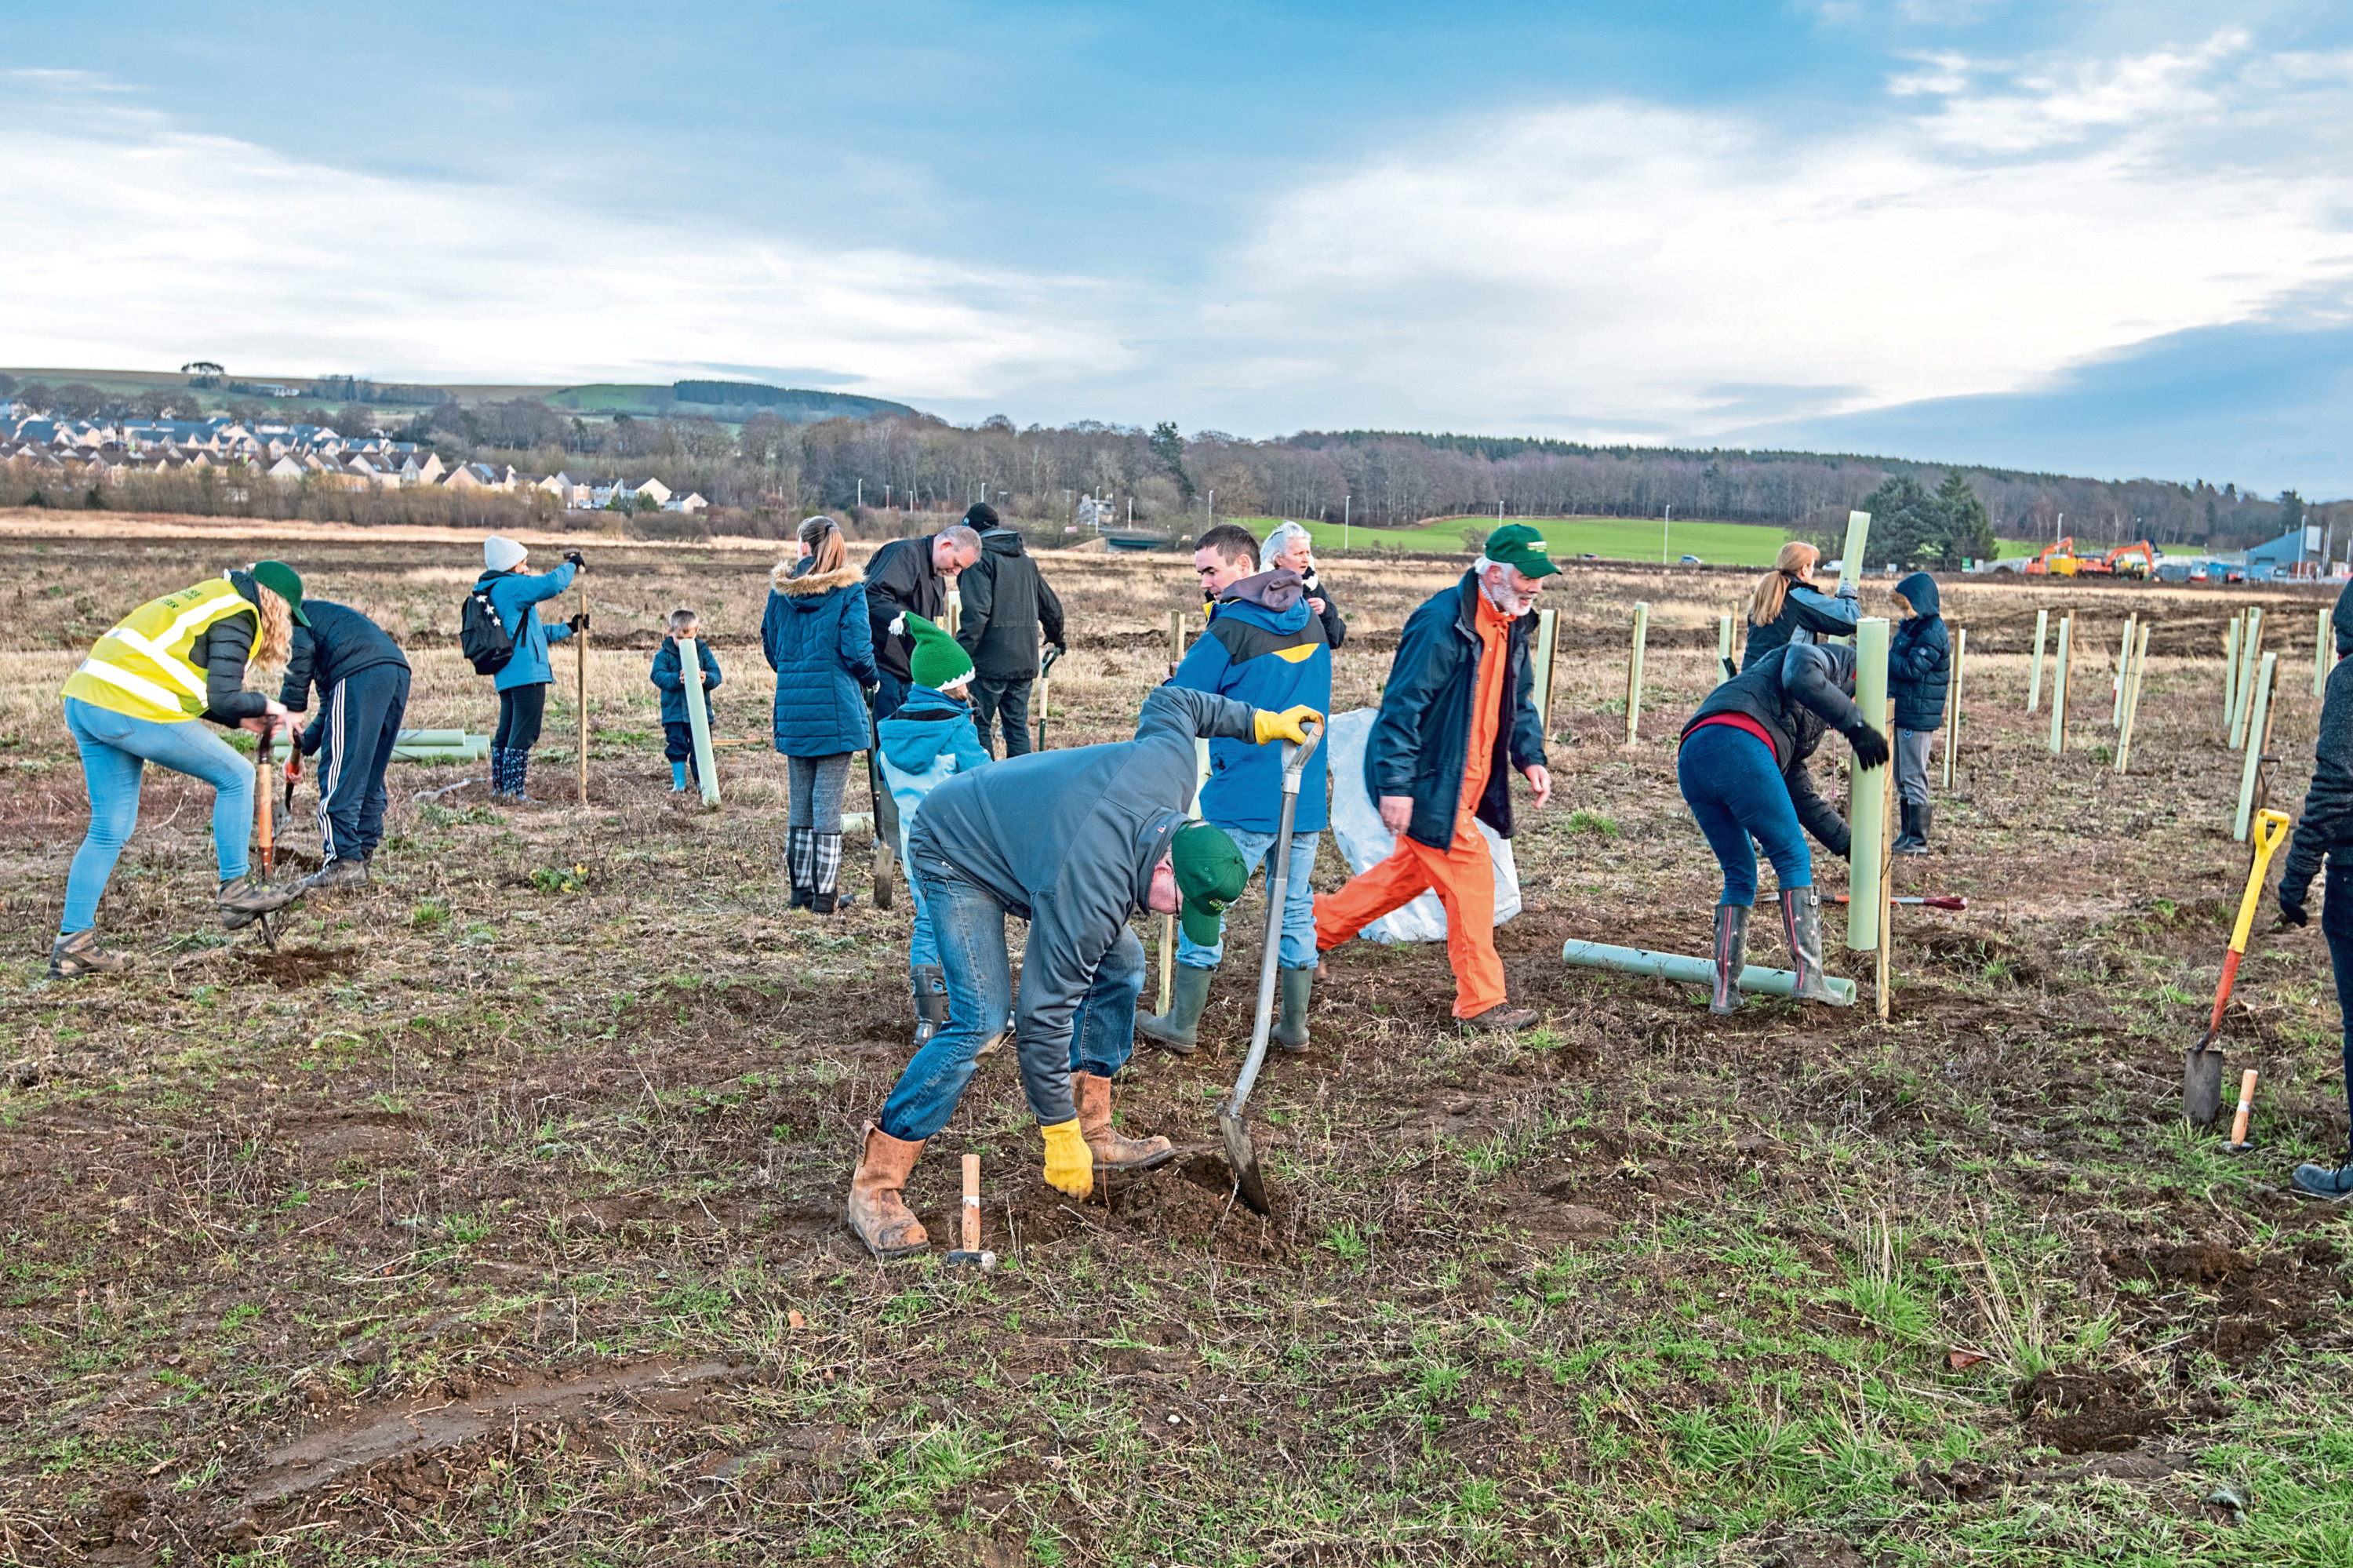 Tree planting at Ury Riverside Park, where there are now plans for a playpark for the community